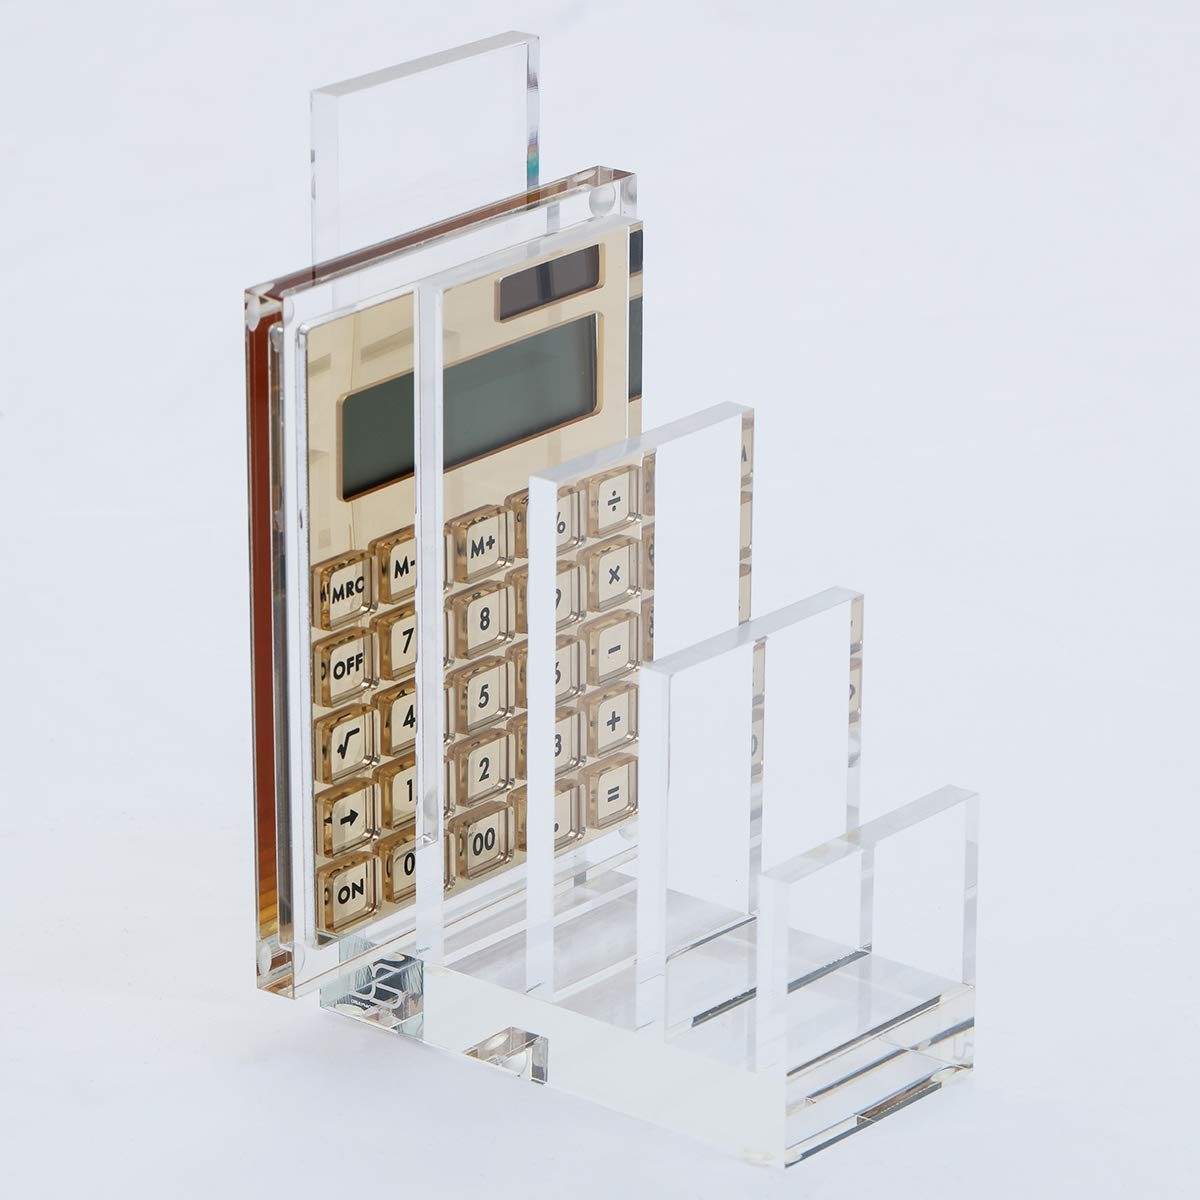 Acrylic Calculator Sorter by Draymond Story, 4 Slots(13/16'' Gap), Clear File Organizer (Calculator Sold Separately) by DS DRAYMOND STORY